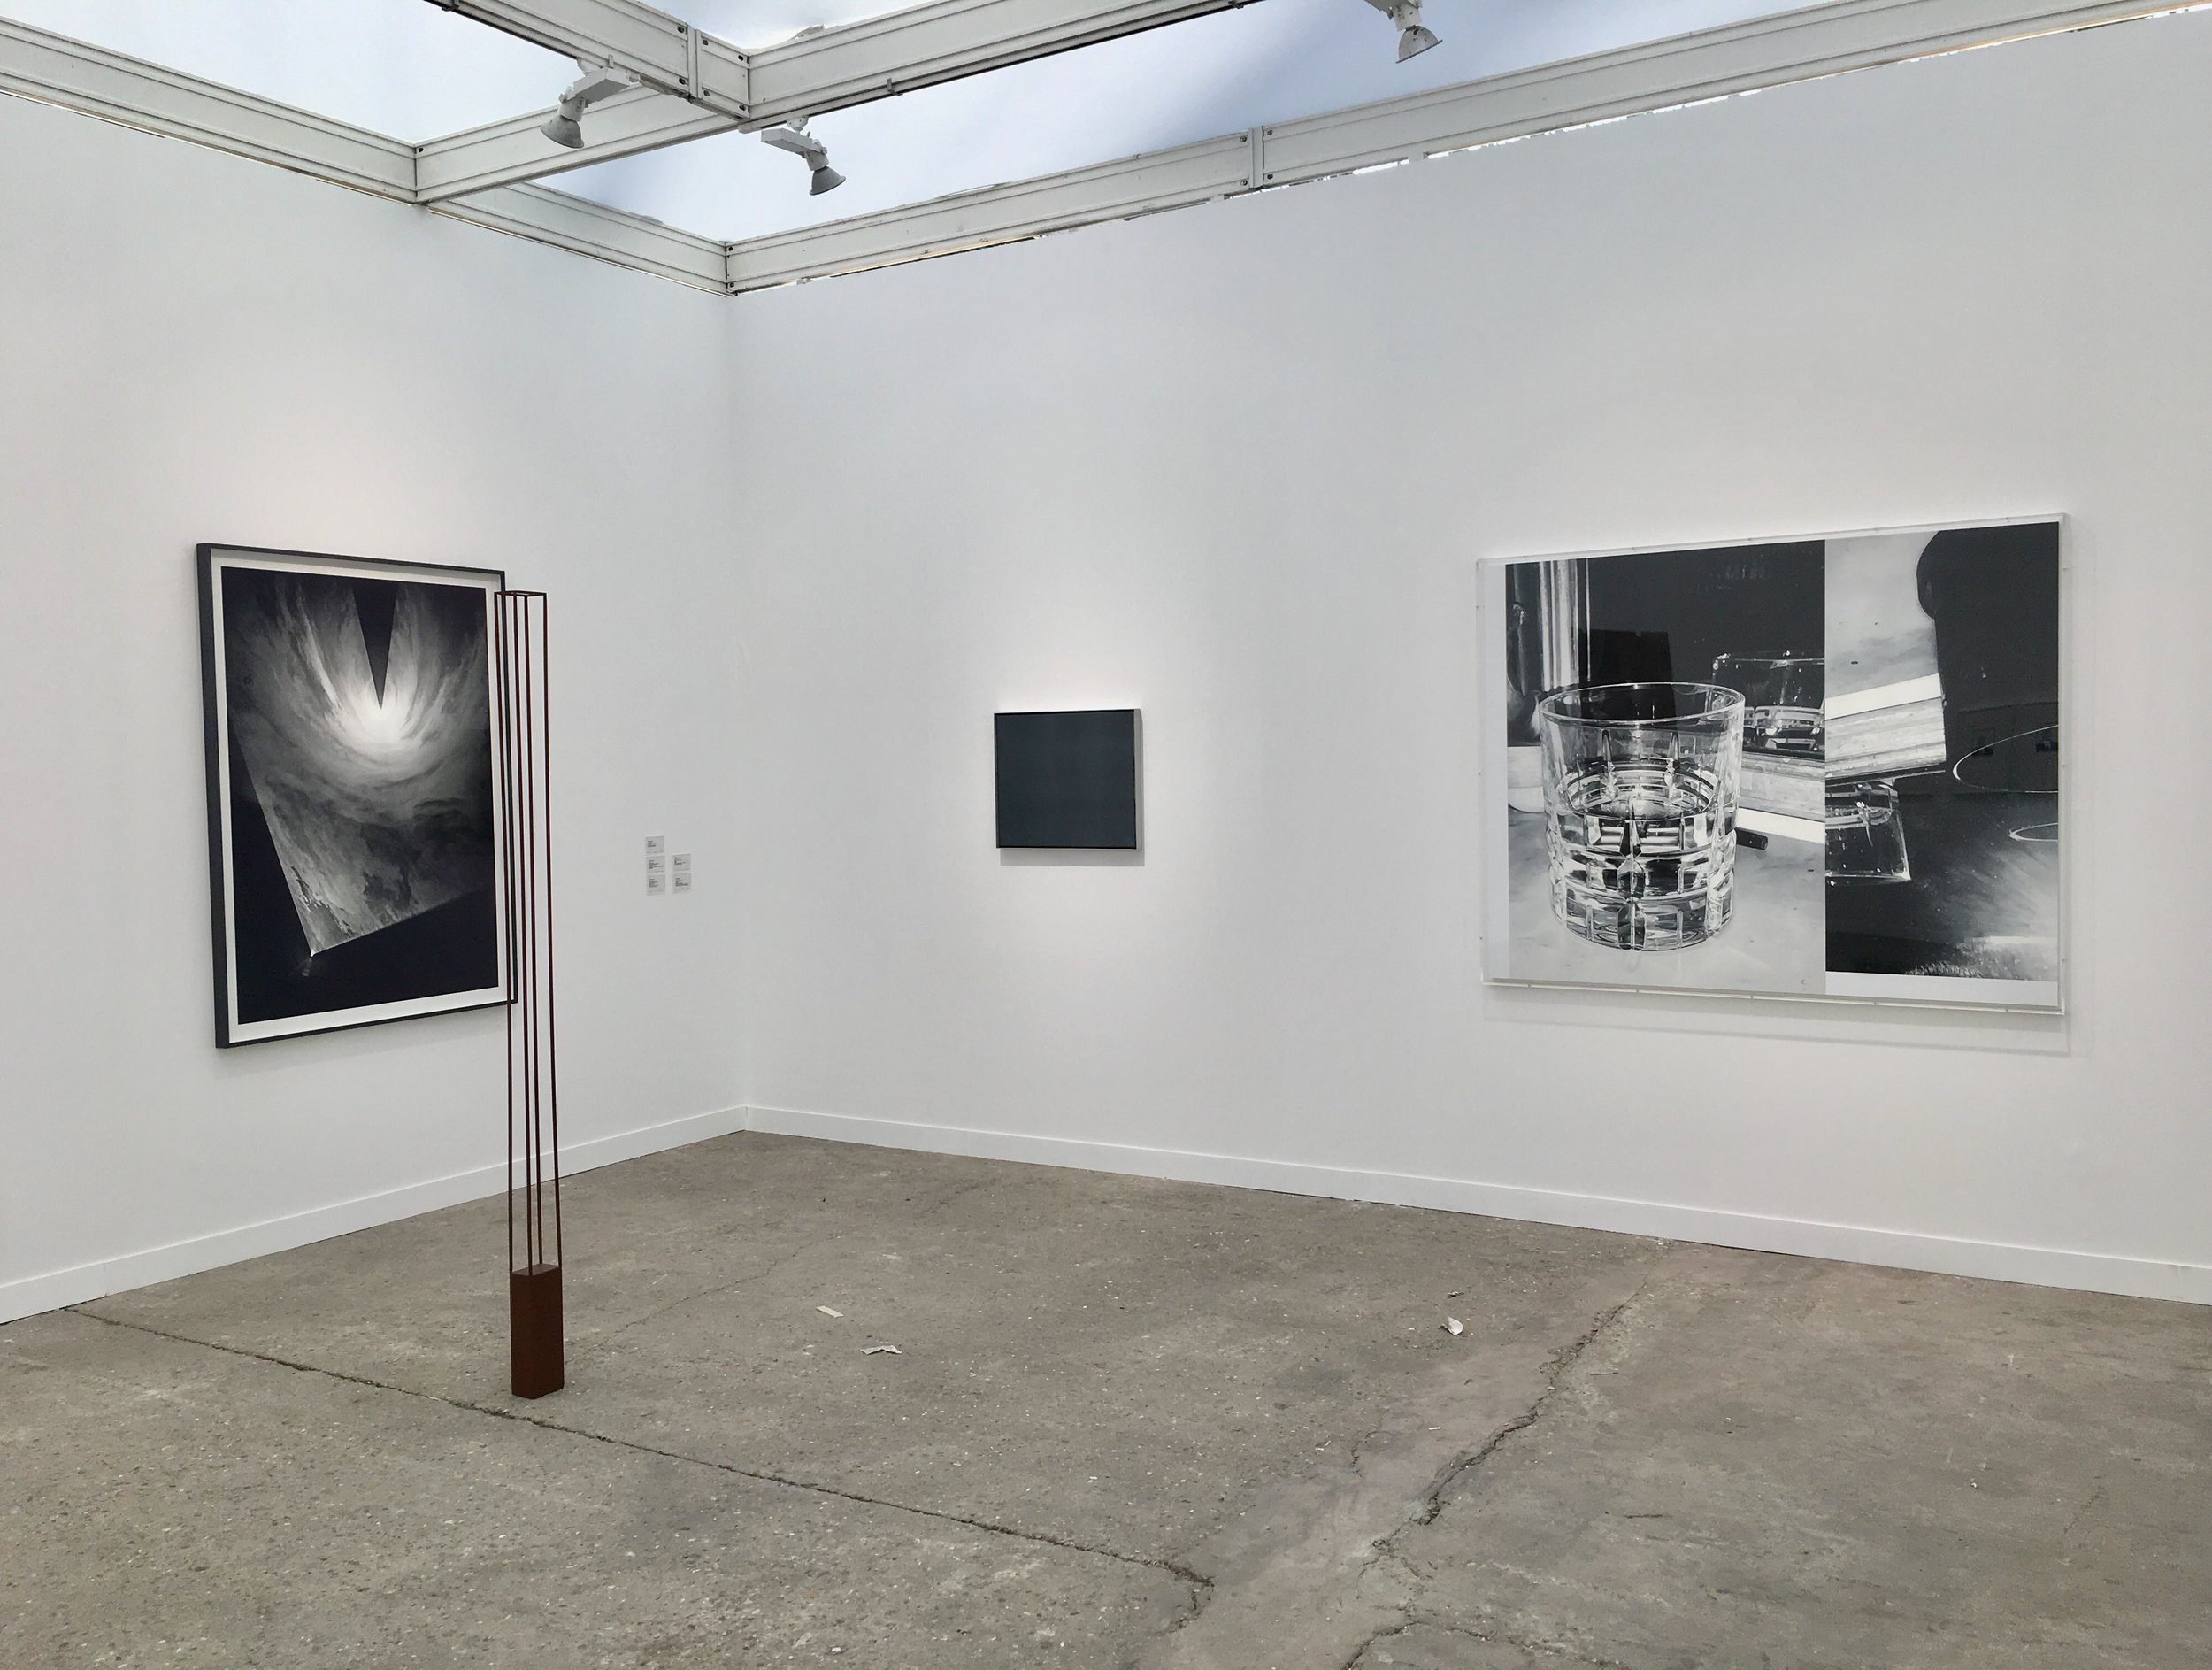 Installation view: Anthony McCall, Peter Downsbrough, Gerhard Richter, James White